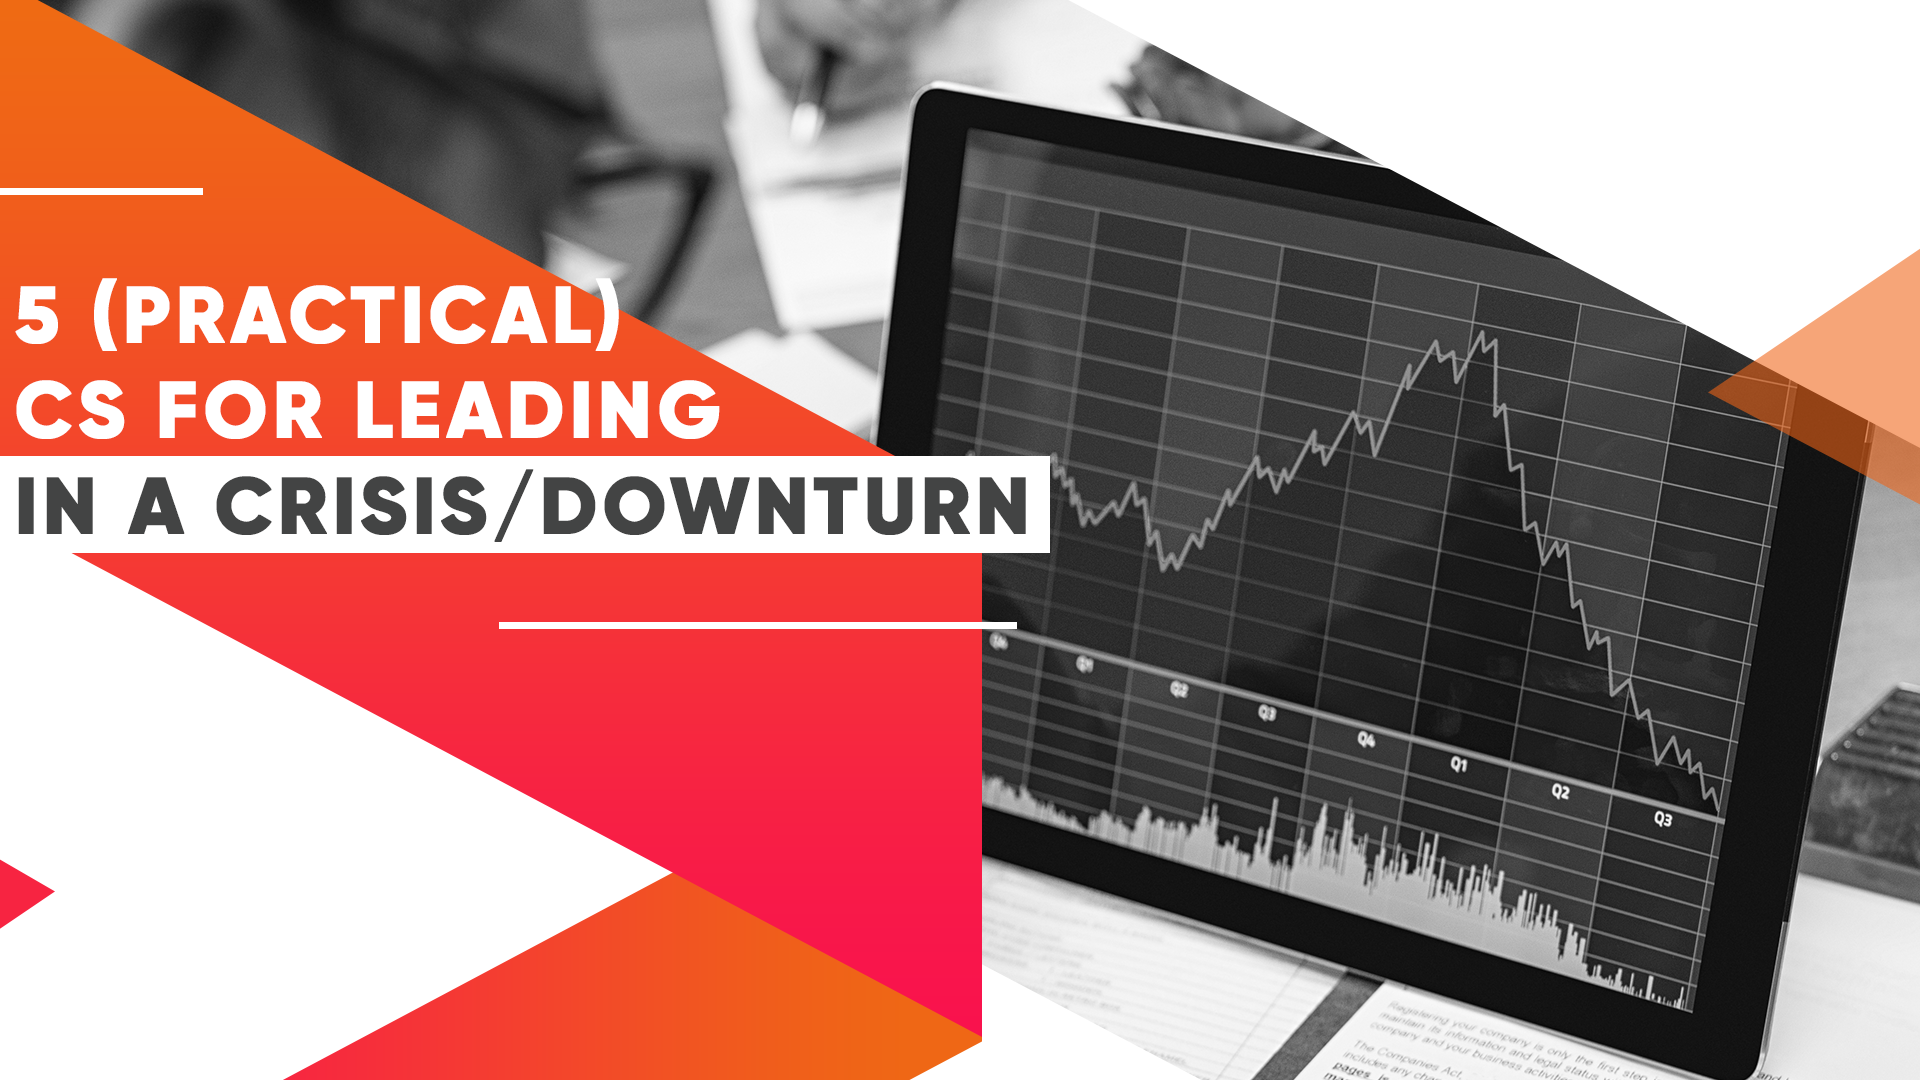 5 (Practical) Cs for Leading in a Crisis/Downturn